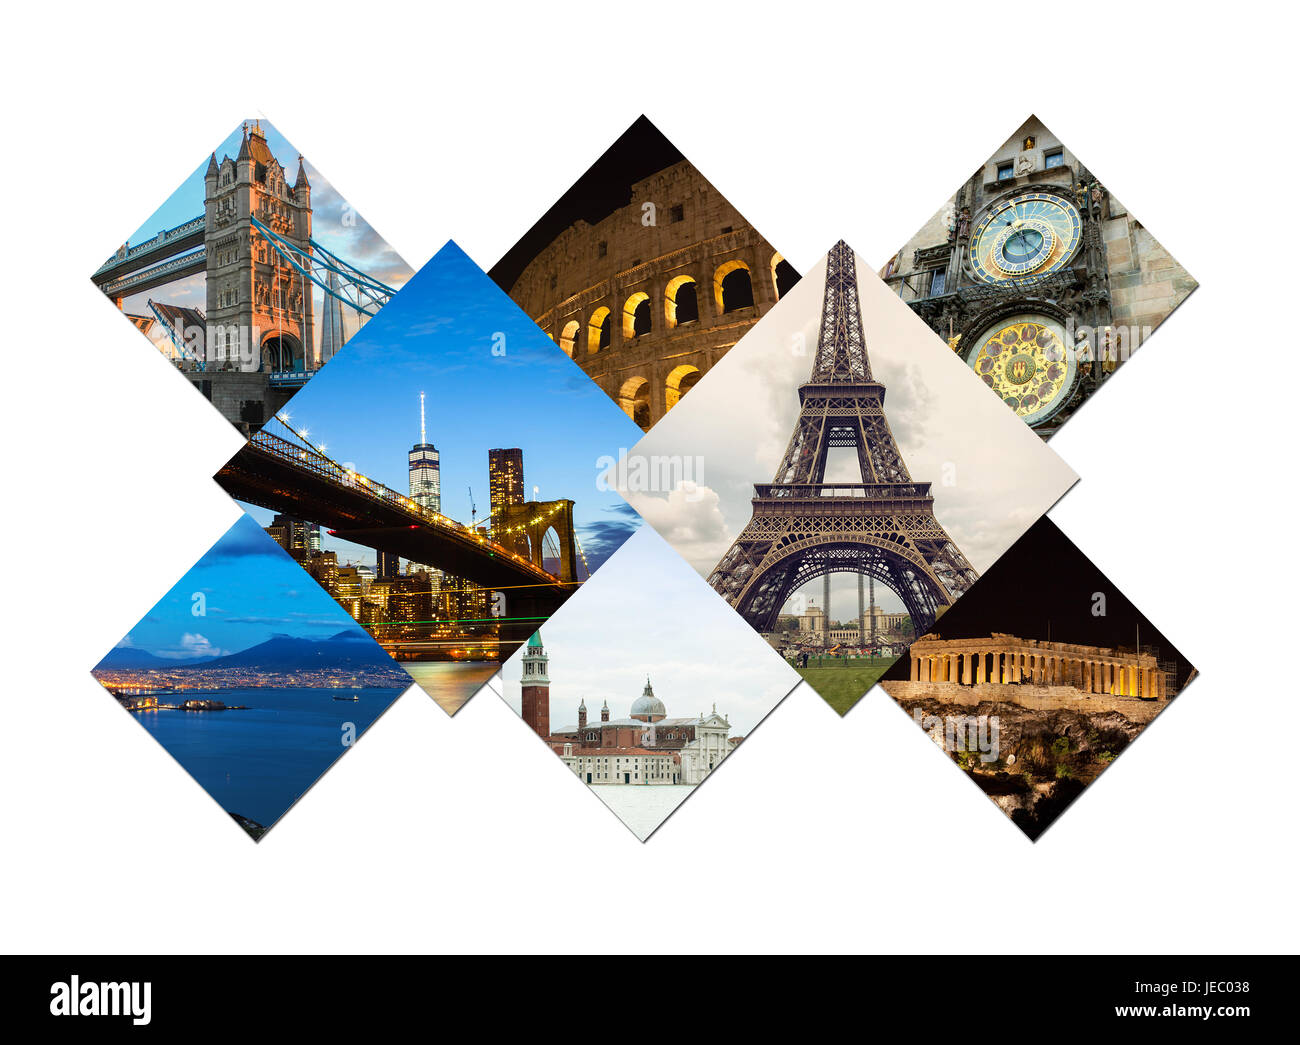 Travel collage of famous places and buildings. - Stock Image